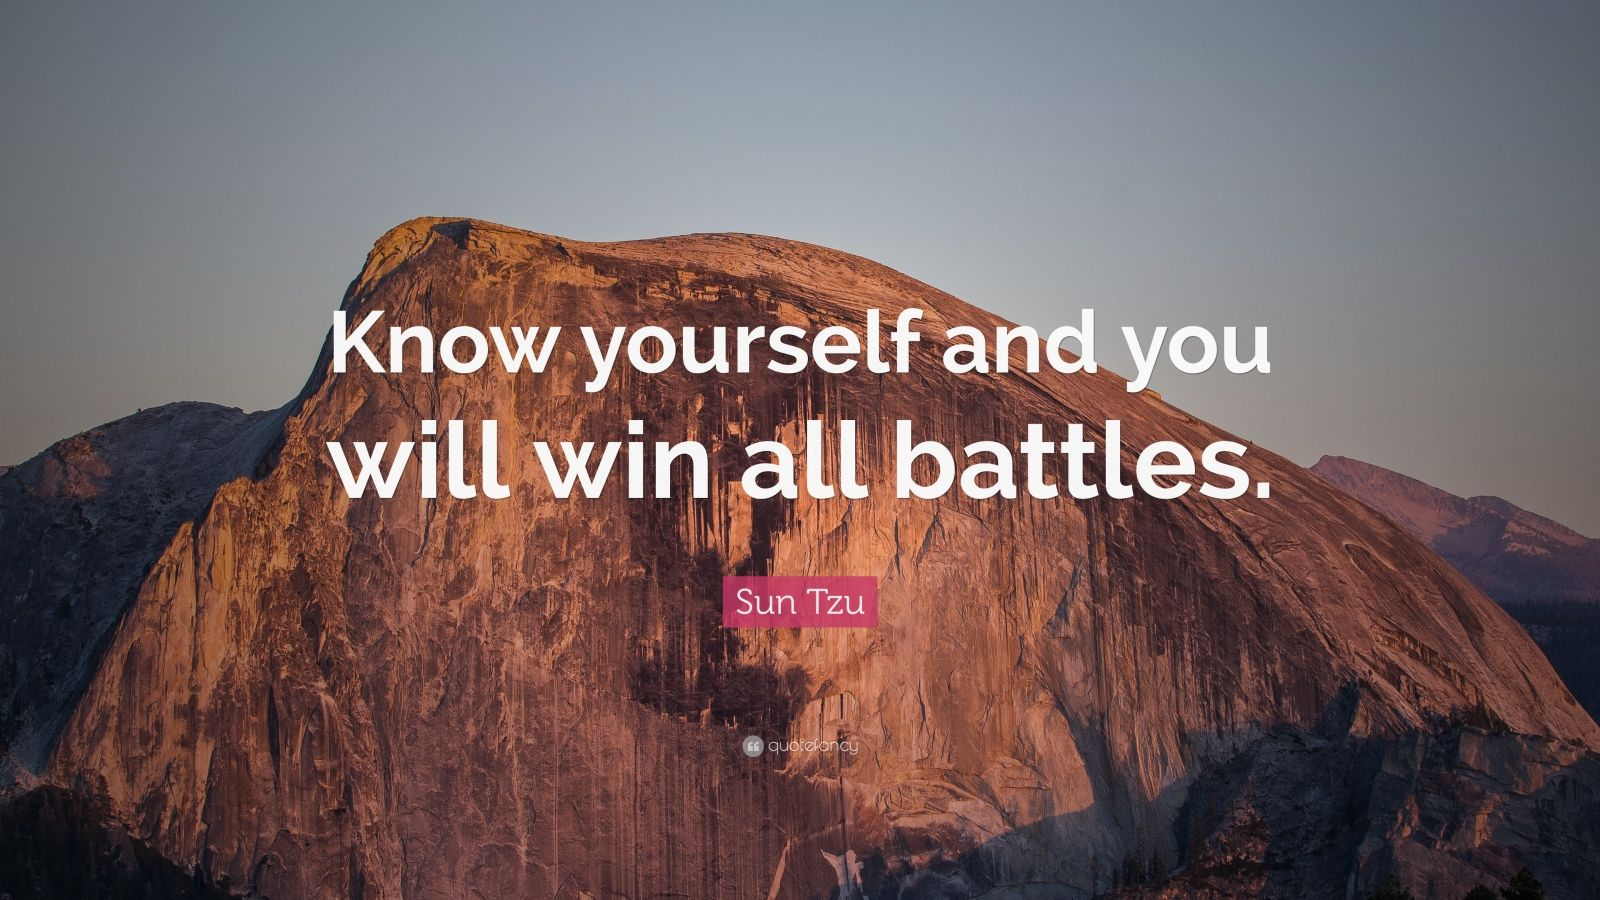 Mother Teresa Quotes Wallpapers Sun Tzu Quote Know Yourself And You Will Win All Battles